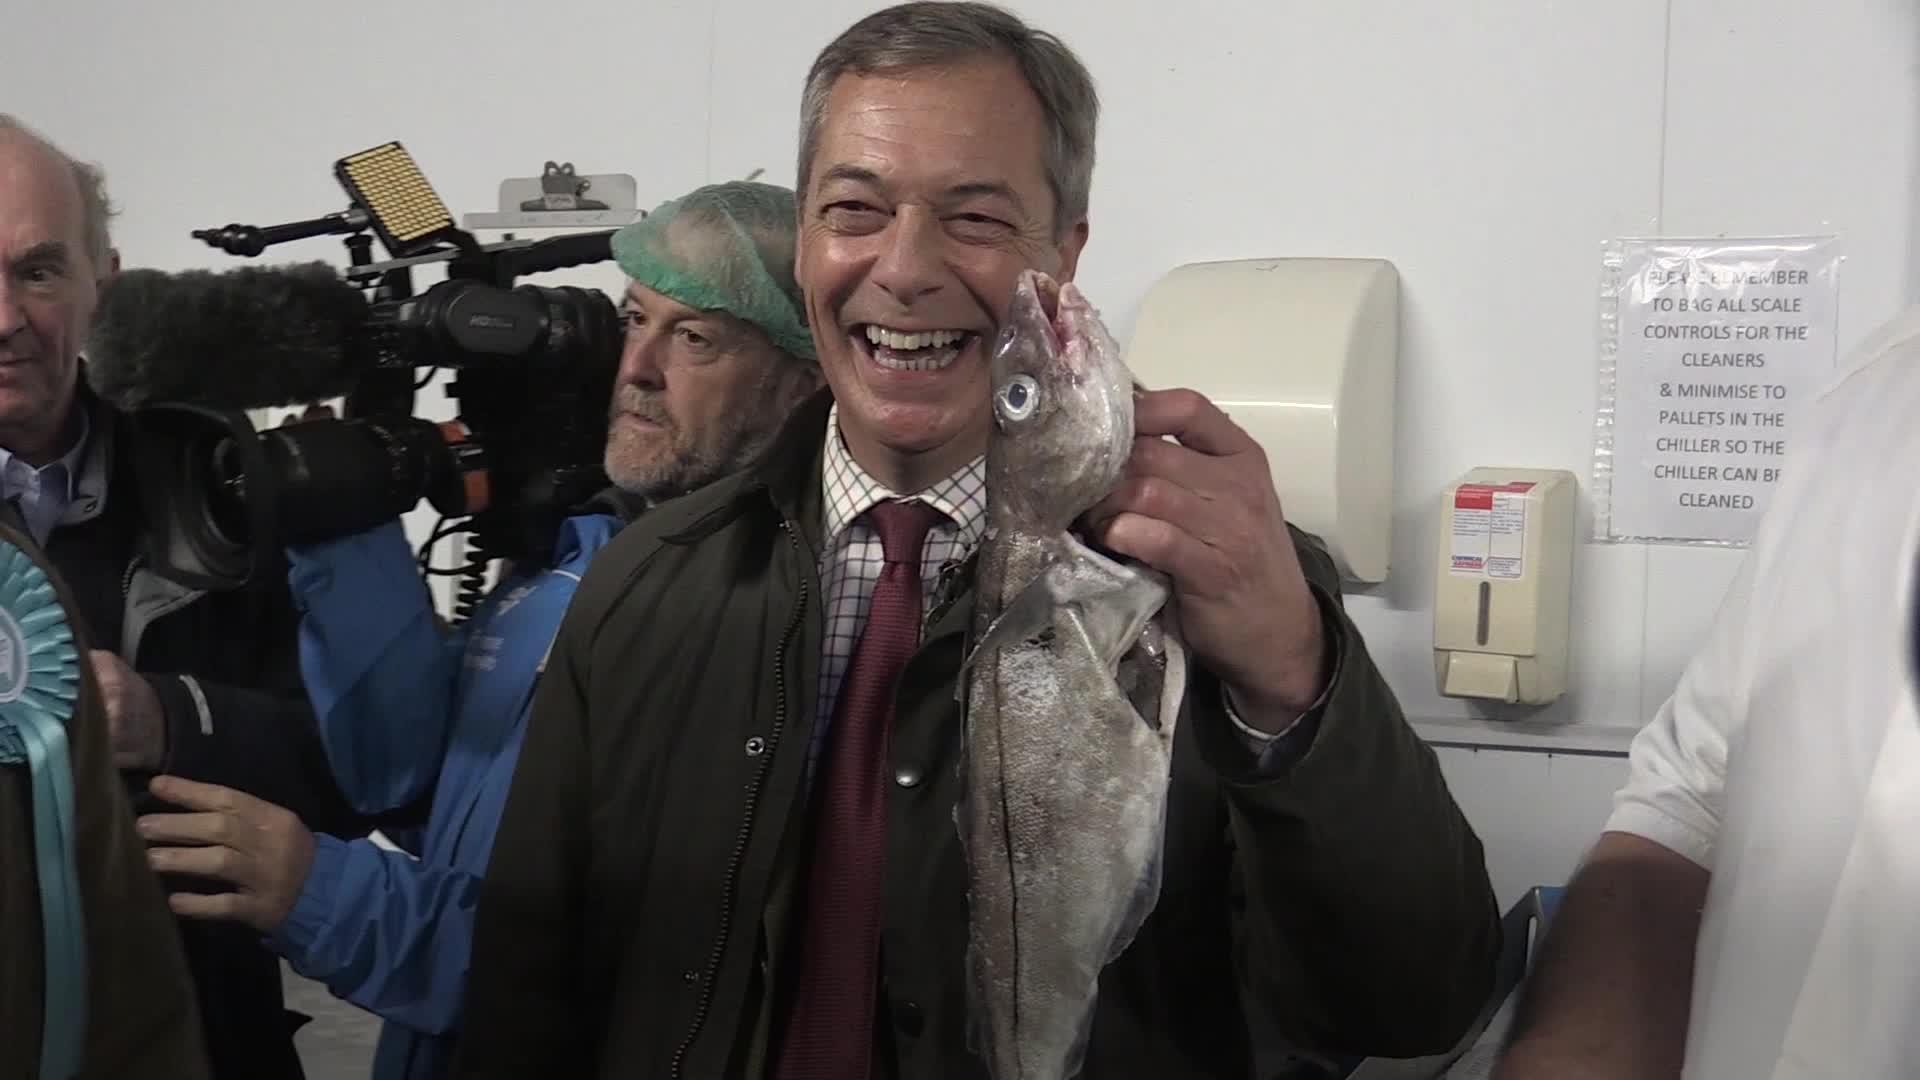 Farage poses with fish during Grimsby election campaign stop - Yahoo News UK